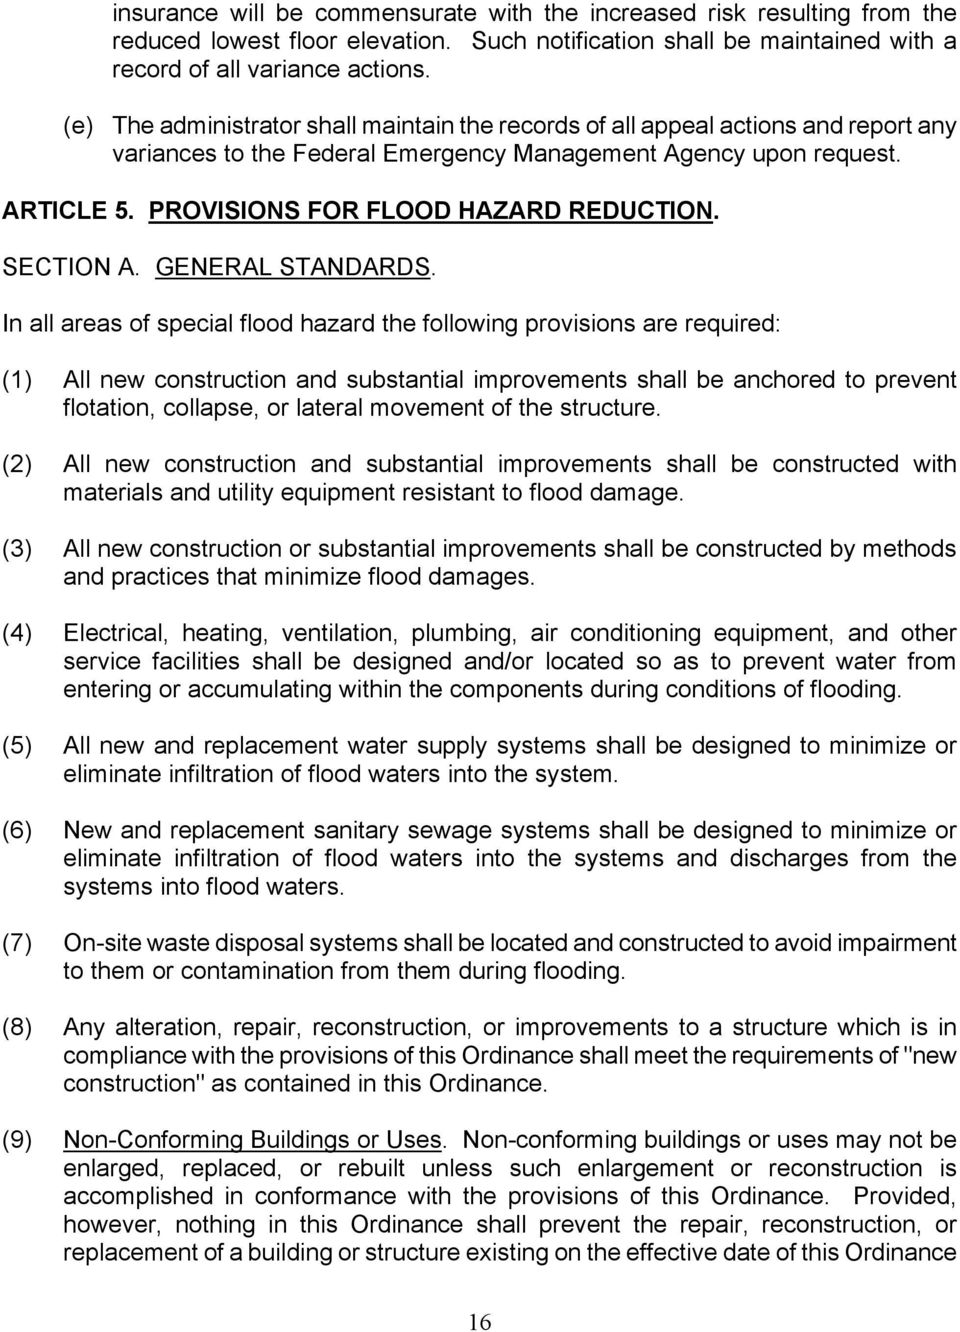 PROVISIONS FOR FLOOD HAZARD REDUCTION. SECTION A. GENERAL STANDARDS.